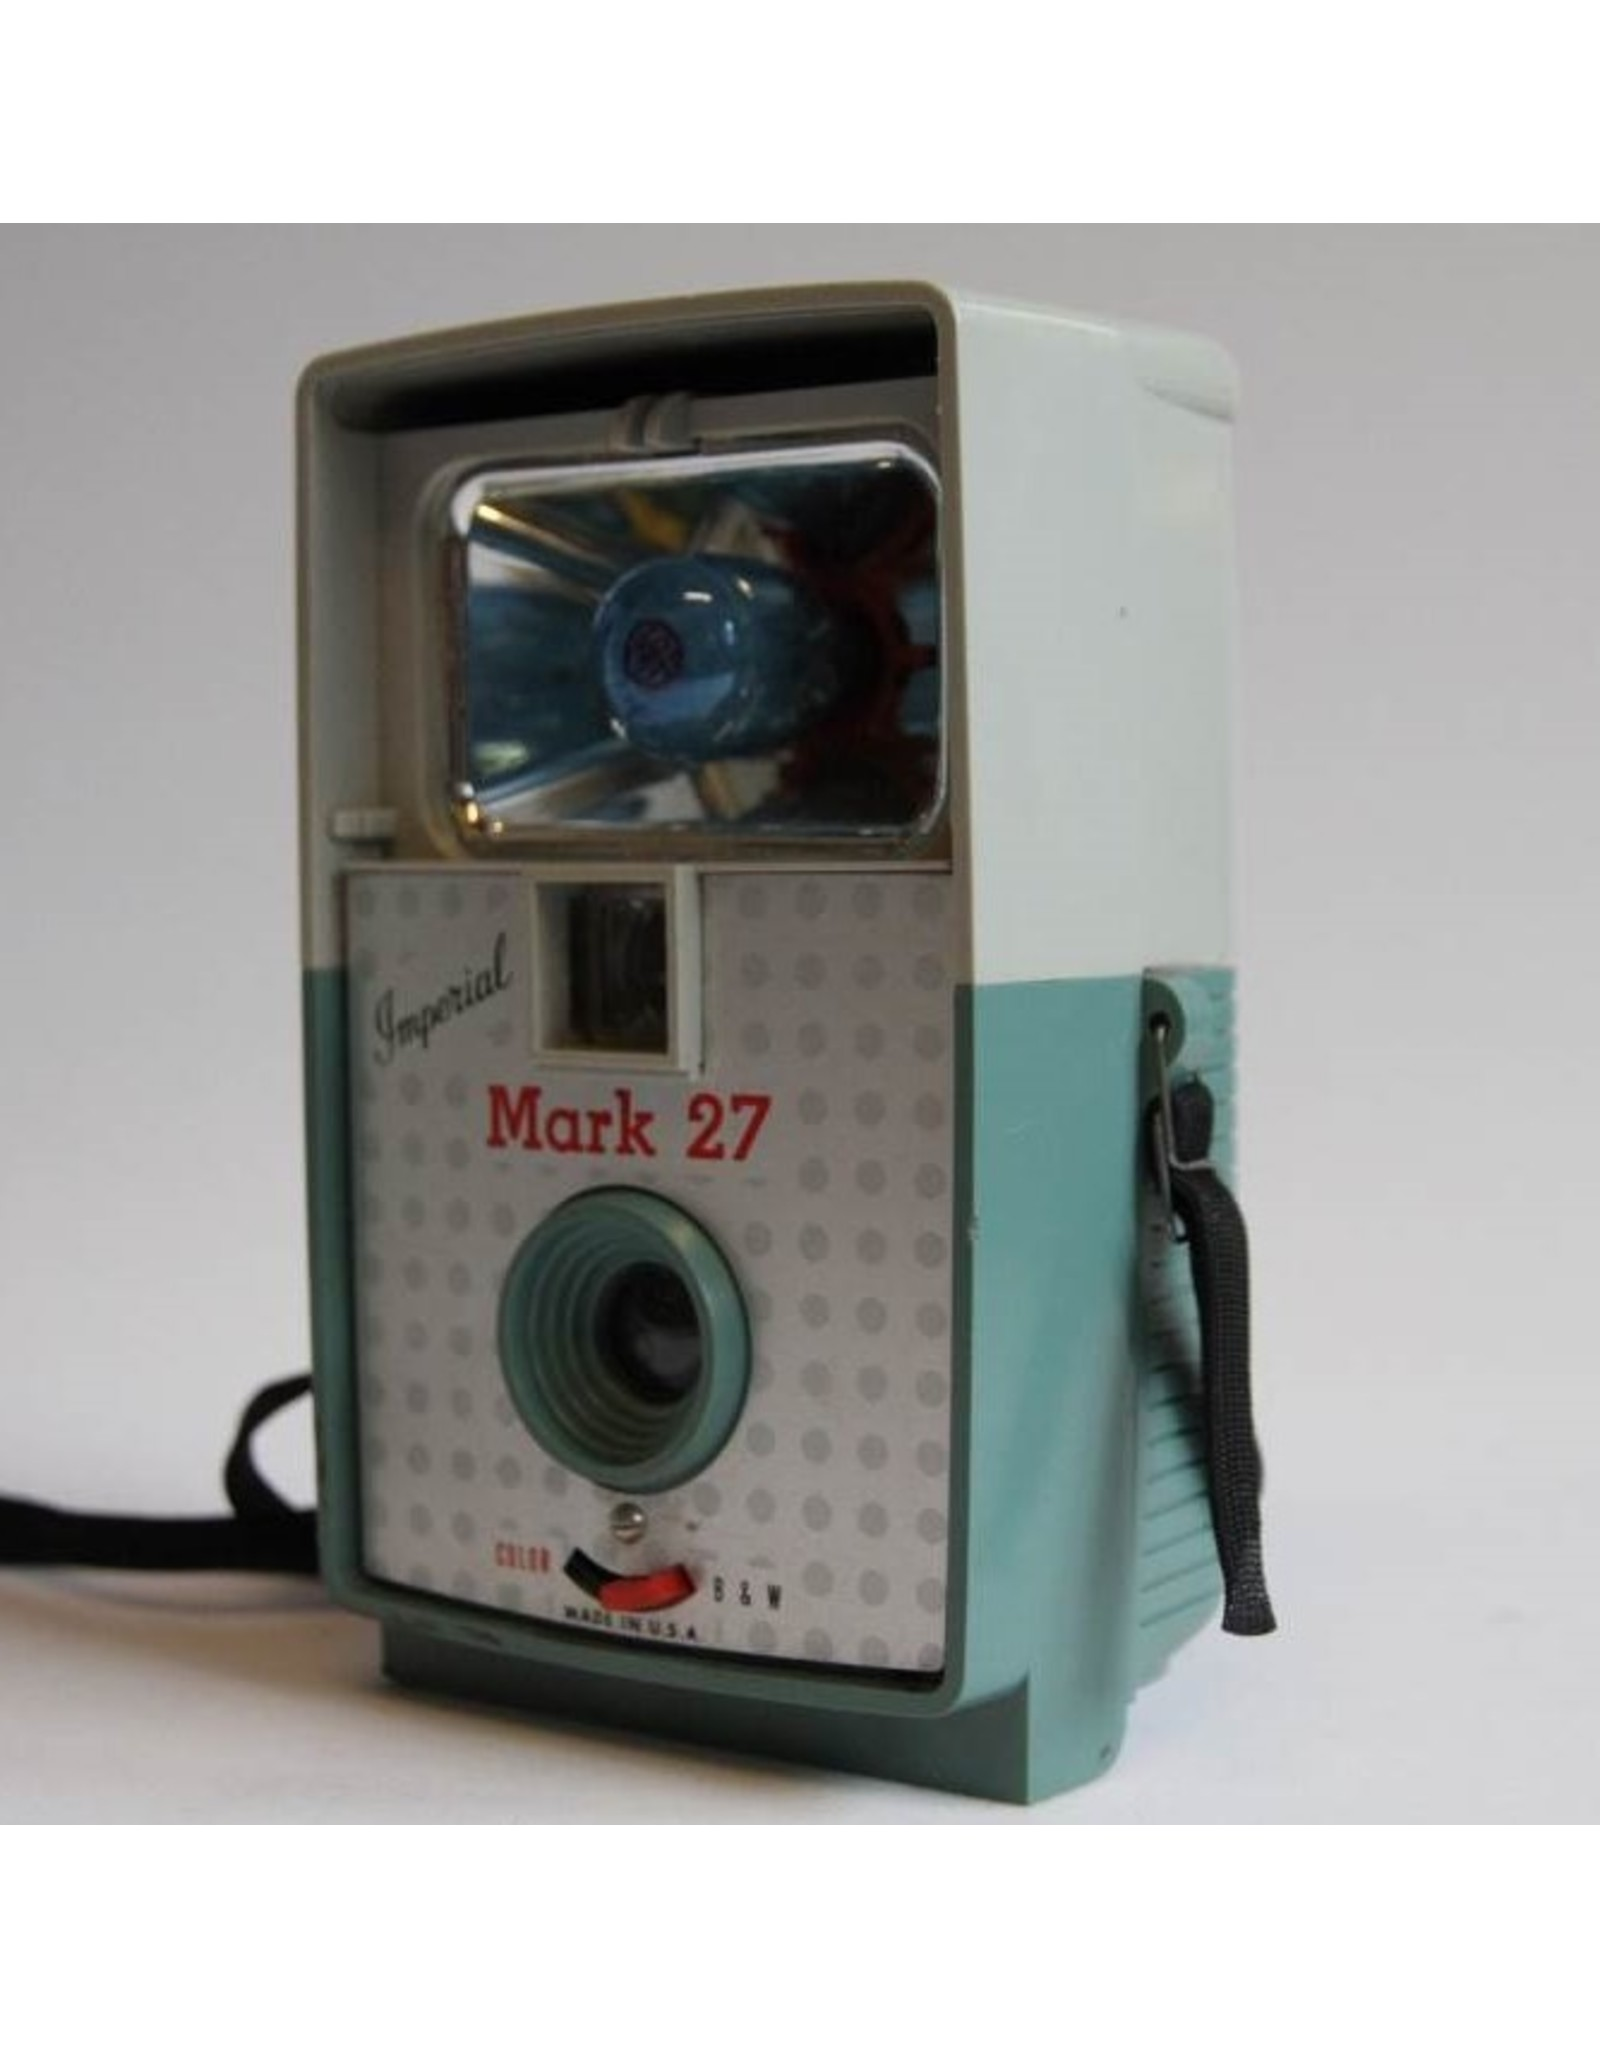 Camera - Imperial Mark 27, 1950s, missing flash cover